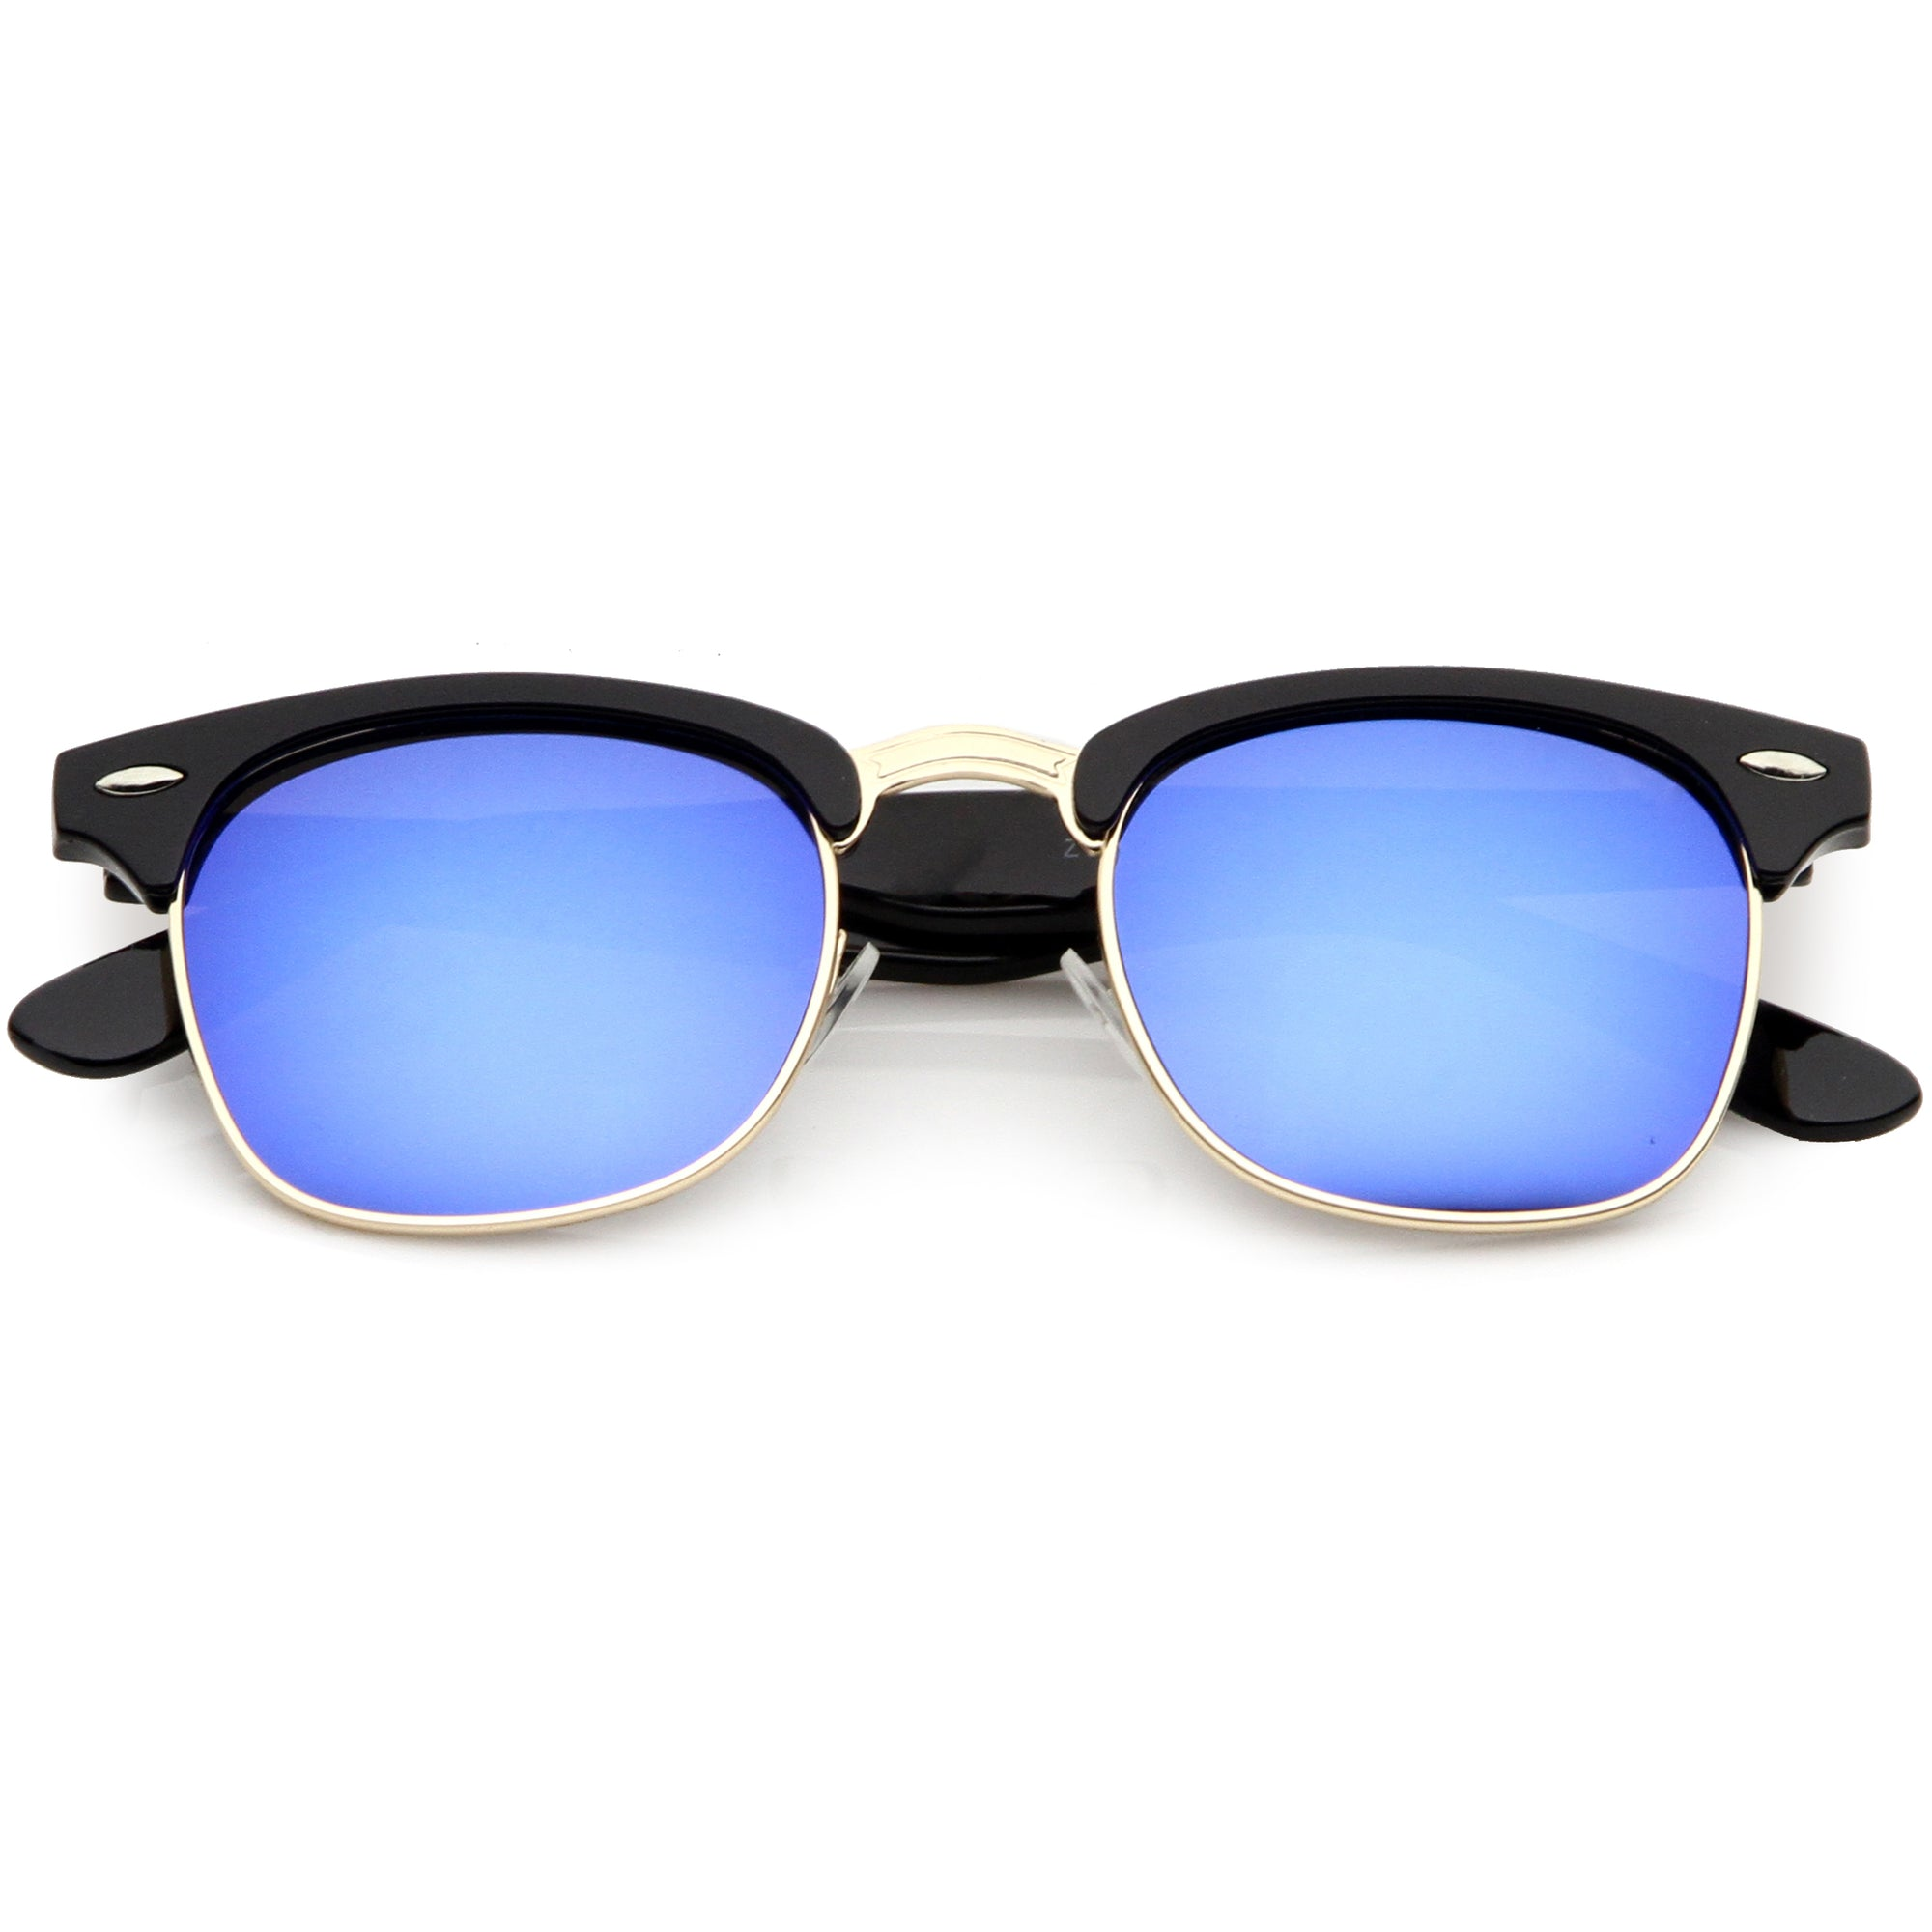 Classic Square Colored Mirrored Lens Horn Rimmed Sunglasses C772